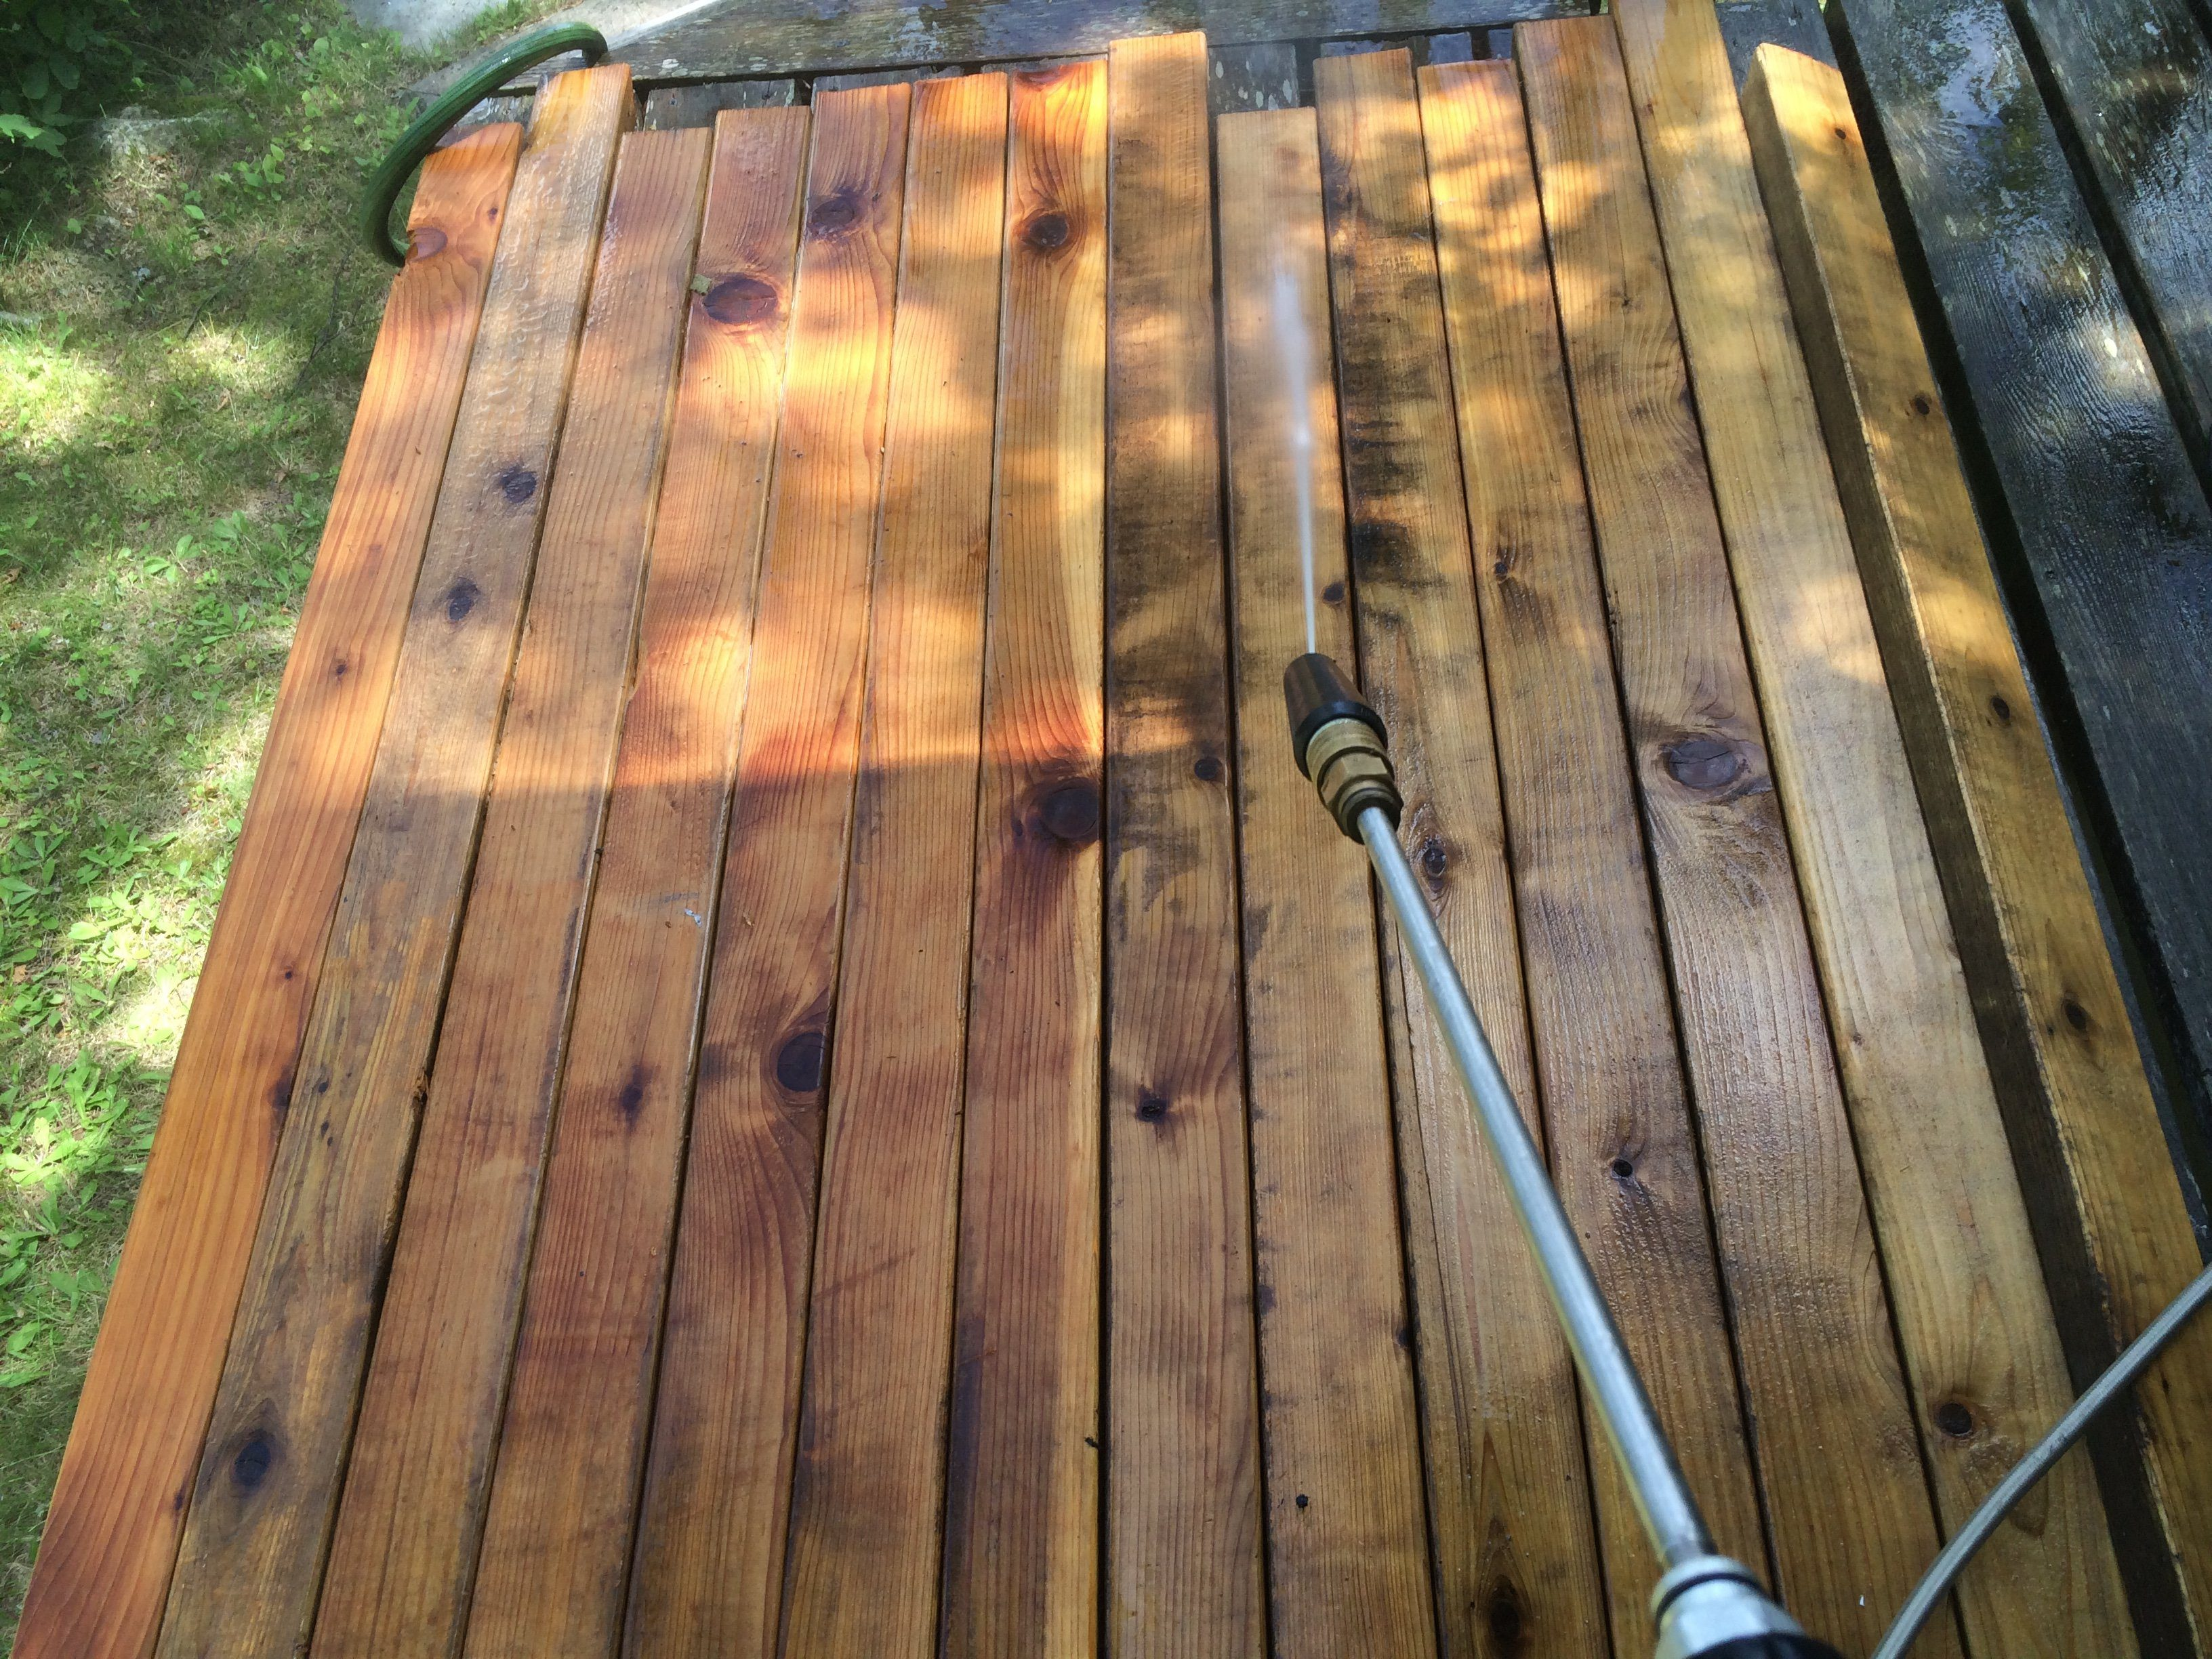 Power washing cedar 2x4s from 20 year old sauna benches.